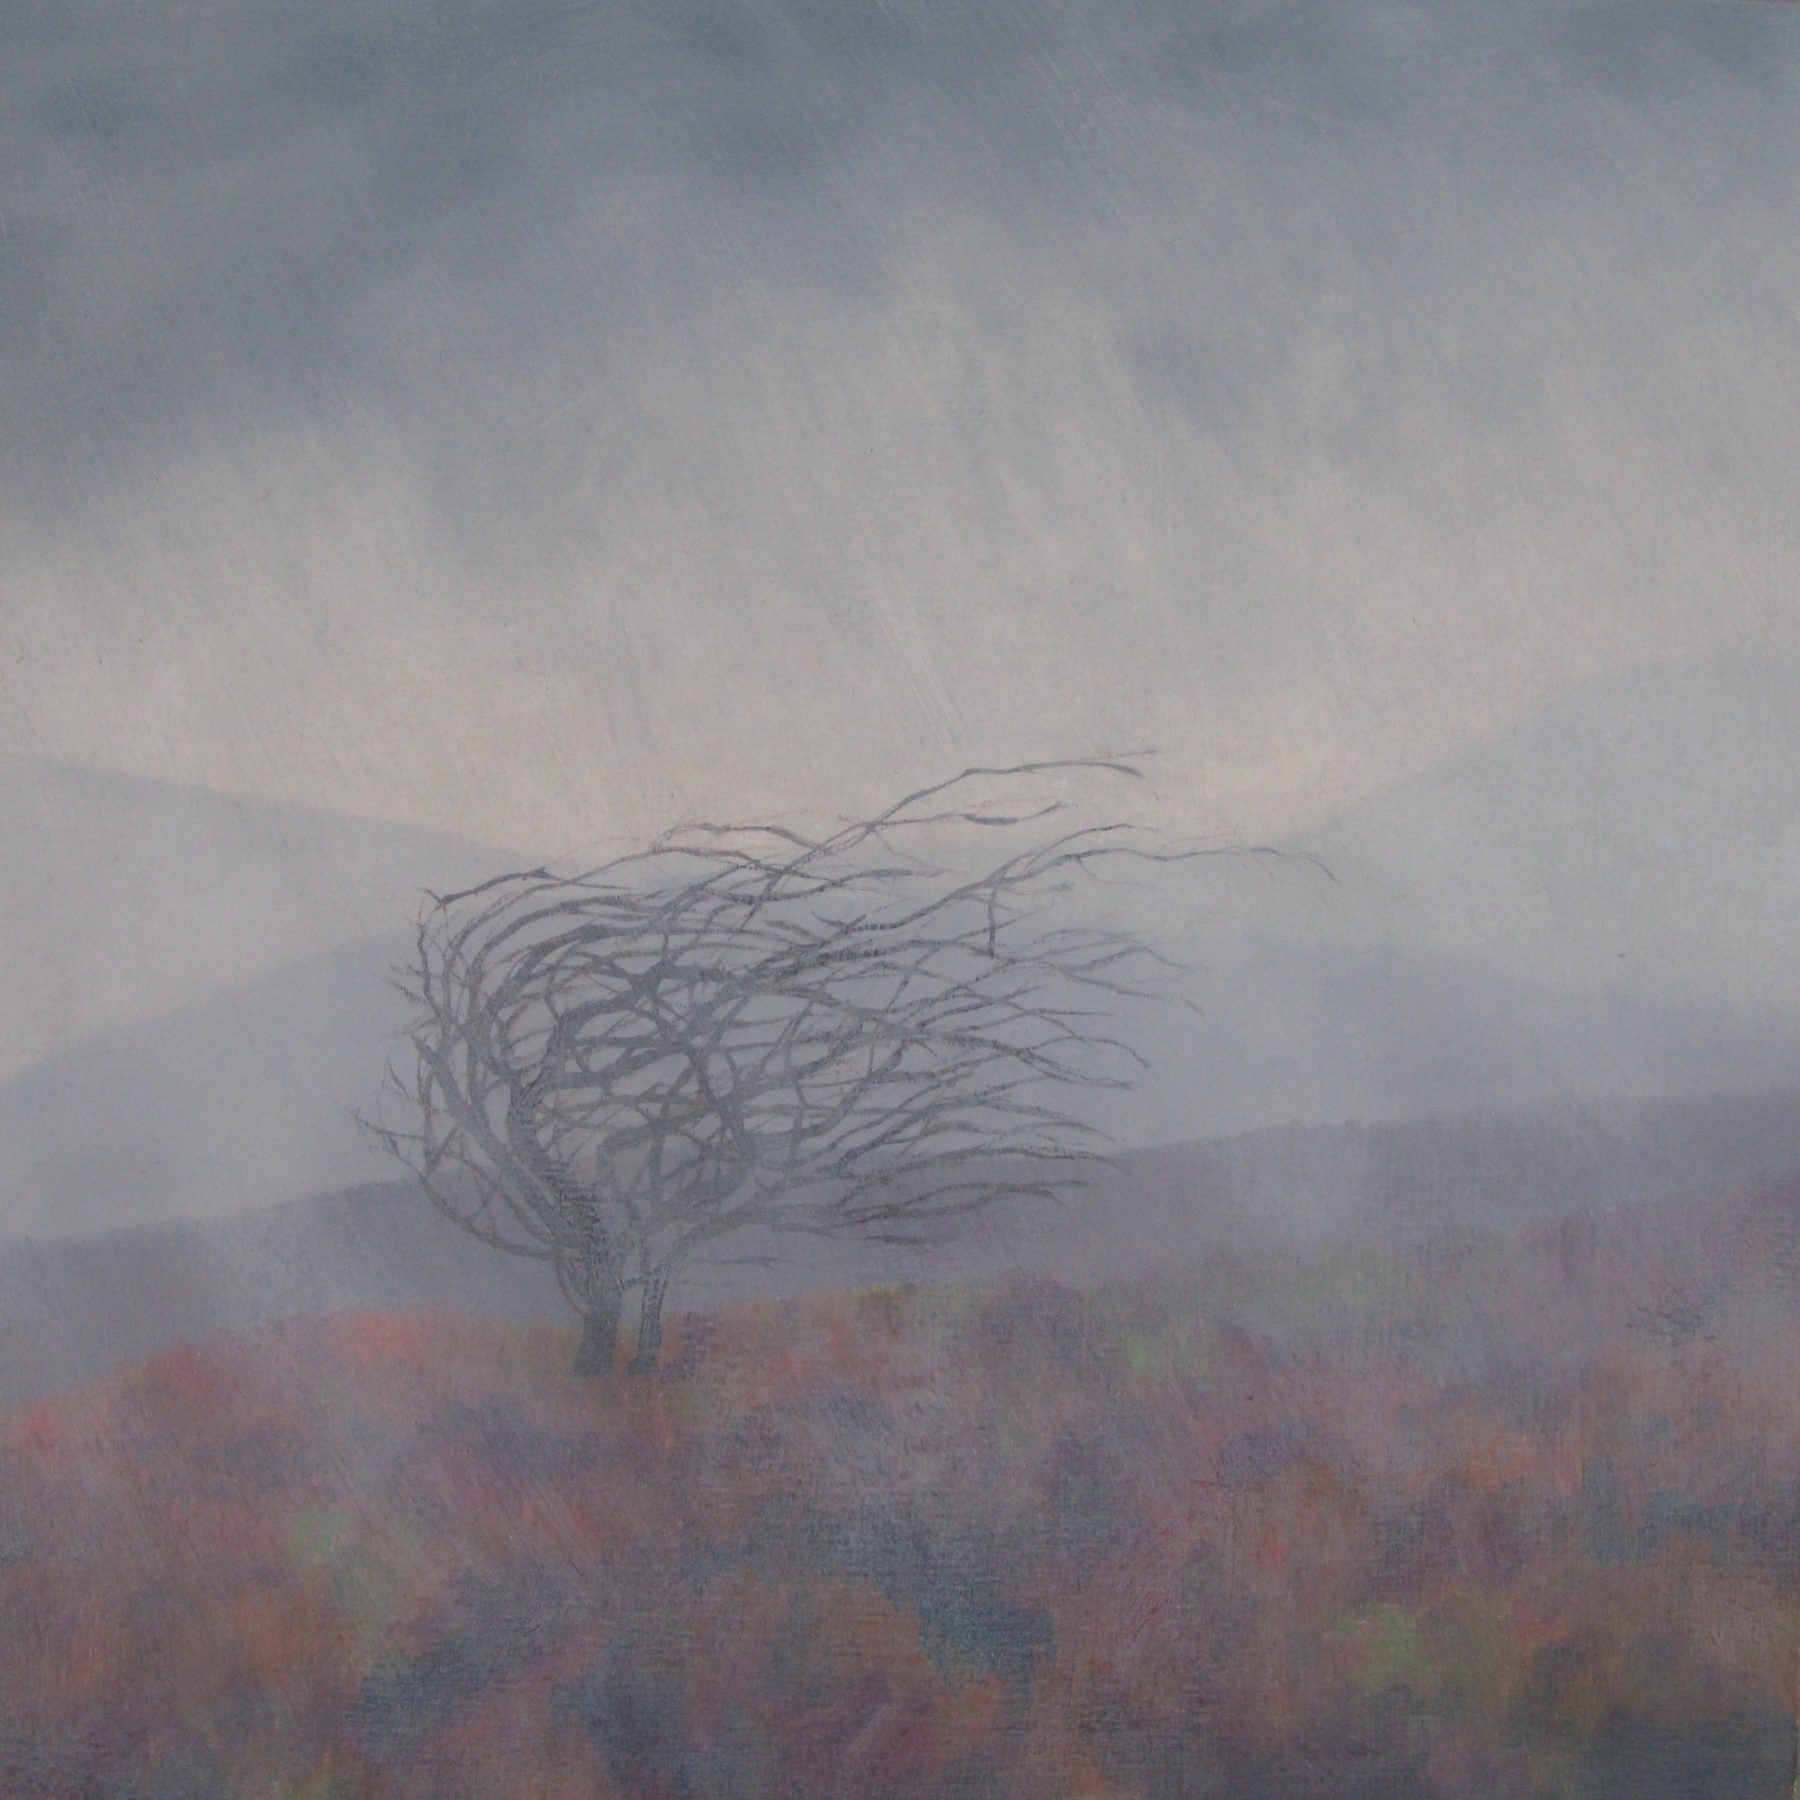 A solitary bare branched tree sits atop an orangey-green bed of foliage atop a rain drenched hill. The silhouettes of grey hills are shown in the background.